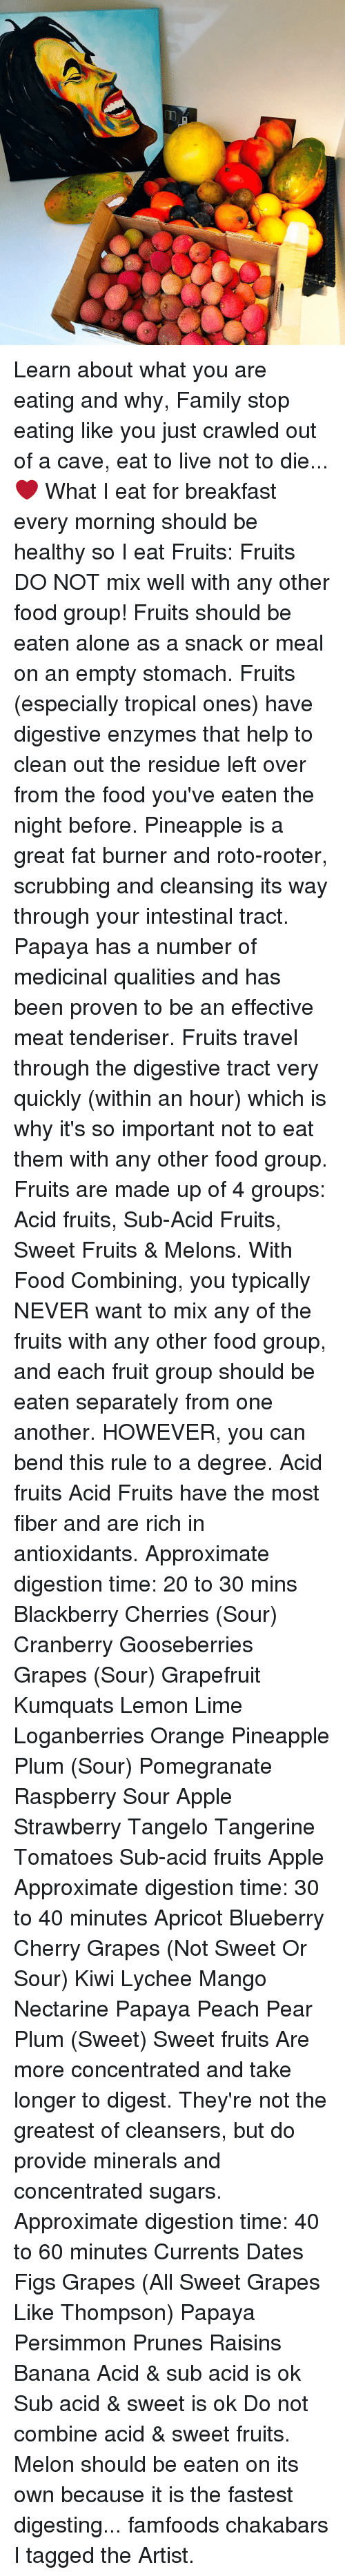 food groups: Learn about what you are eating and why, Family stop eating like you just crawled out of a cave, eat to live not to die... ❤️ What I eat for breakfast every morning should be healthy so I eat Fruits: Fruits DO NOT mix well with any other food group! Fruits should be eaten alone as a snack or meal on an empty stomach. Fruits (especially tropical ones) have digestive enzymes that help to clean out the residue left over from the food you've eaten the night before. Pineapple is a great fat burner and roto-rooter, scrubbing and cleansing its way through your intestinal tract. Papaya has a number of medicinal qualities and has been proven to be an effective meat tenderiser. Fruits travel through the digestive tract very quickly (within an hour) which is why it's so important not to eat them with any other food group. Fruits are made up of 4 groups: Acid fruits, Sub-Acid Fruits, Sweet Fruits & Melons. With Food Combining, you typically NEVER want to mix any of the fruits with any other food group, and each fruit group should be eaten separately from one another. HOWEVER, you can bend this rule to a degree. Acid fruits Acid Fruits have the most fiber and are rich in antioxidants. Approximate digestion time: 20 to 30 mins Blackberry Cherries (Sour) Cranberry Gooseberries Grapes (Sour) Grapefruit Kumquats Lemon Lime Loganberries Orange Pineapple Plum (Sour) Pomegranate Raspberry Sour Apple Strawberry Tangelo Tangerine Tomatoes Sub-acid fruits Apple Approximate digestion time: 30 to 40 minutes Apricot Blueberry Cherry Grapes (Not Sweet Or Sour) Kiwi Lychee Mango Nectarine Papaya Peach Pear Plum (Sweet) Sweet fruits Are more concentrated and take longer to digest. They're not the greatest of cleansers, but do provide minerals and concentrated sugars. Approximate digestion time: 40 to 60 minutes Currents Dates Figs Grapes (All Sweet Grapes Like Thompson) Papaya Persimmon Prunes Raisins Banana Acid & sub acid is ok Sub acid & sweet is ok Do not combine acid & sweet f